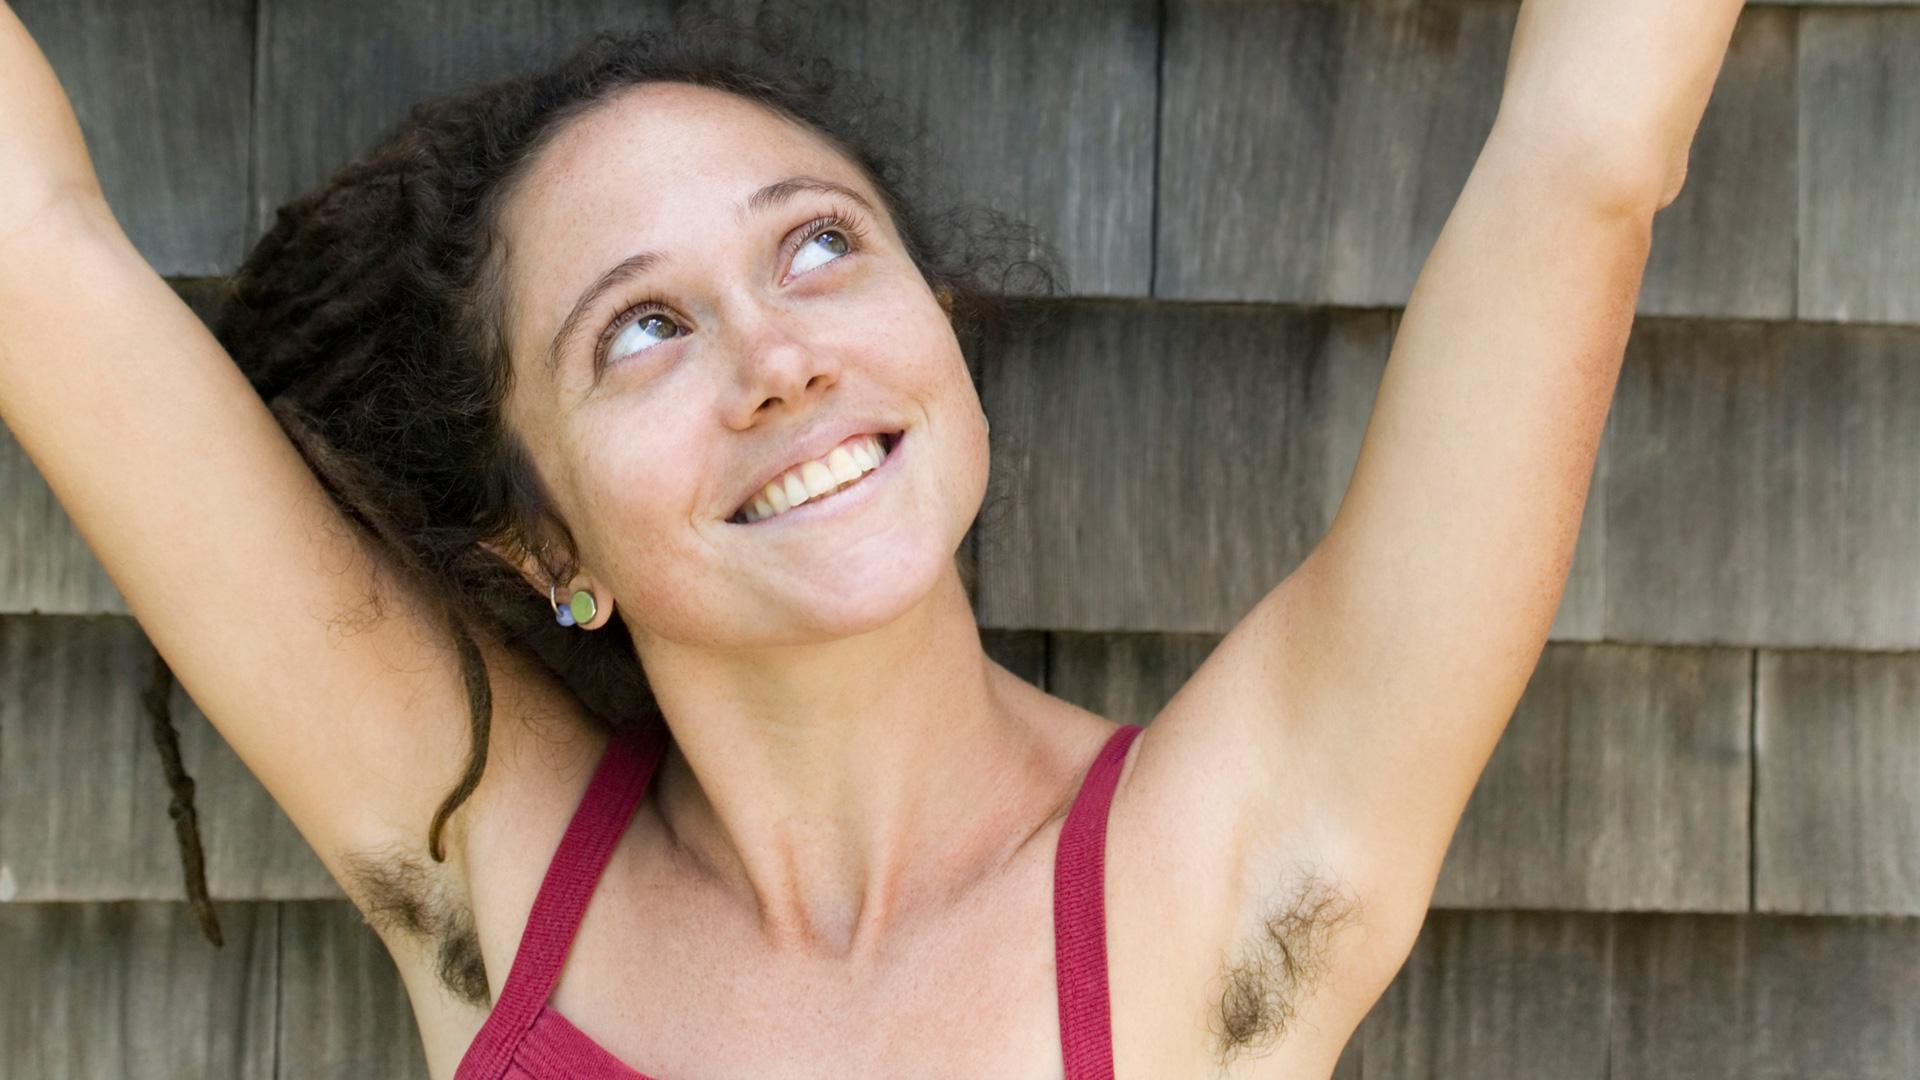 The right to bare armpits